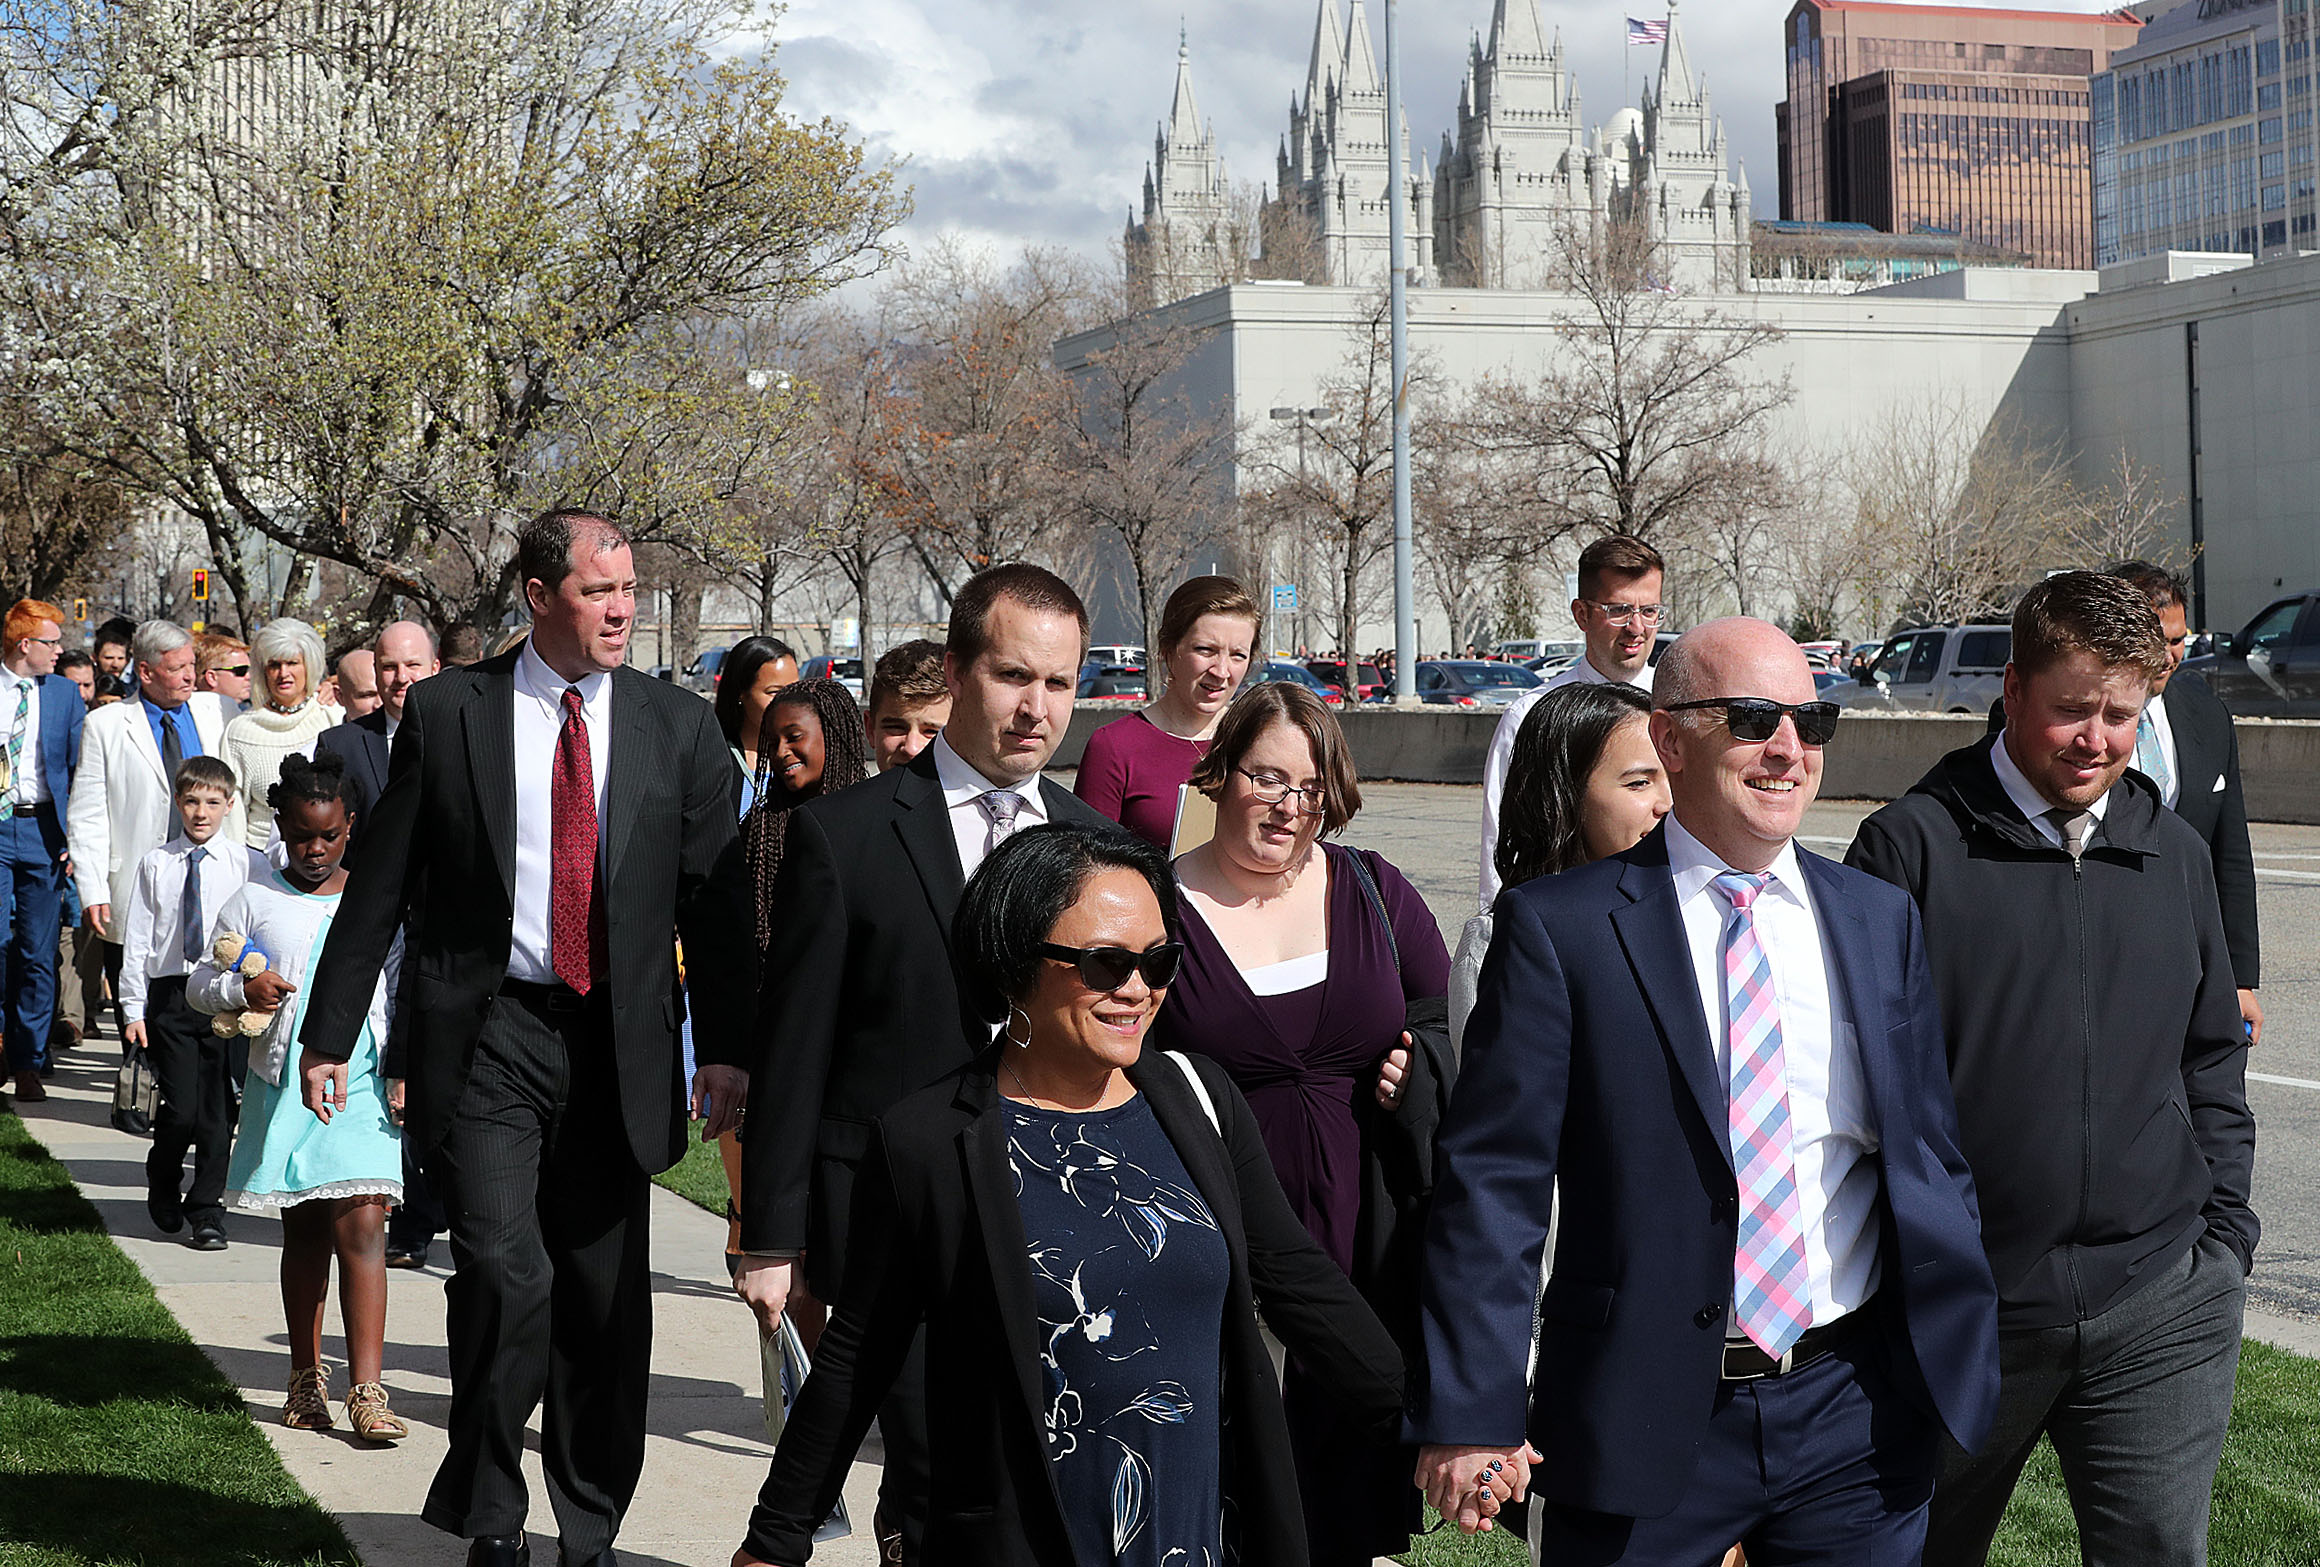 Conferencegoers walk away from the Conference Center following the afternoon session of general conference of The Church of Jesus Christ of Latter-day Saints in Salt Lake City on Saturday, April 6, 2019.